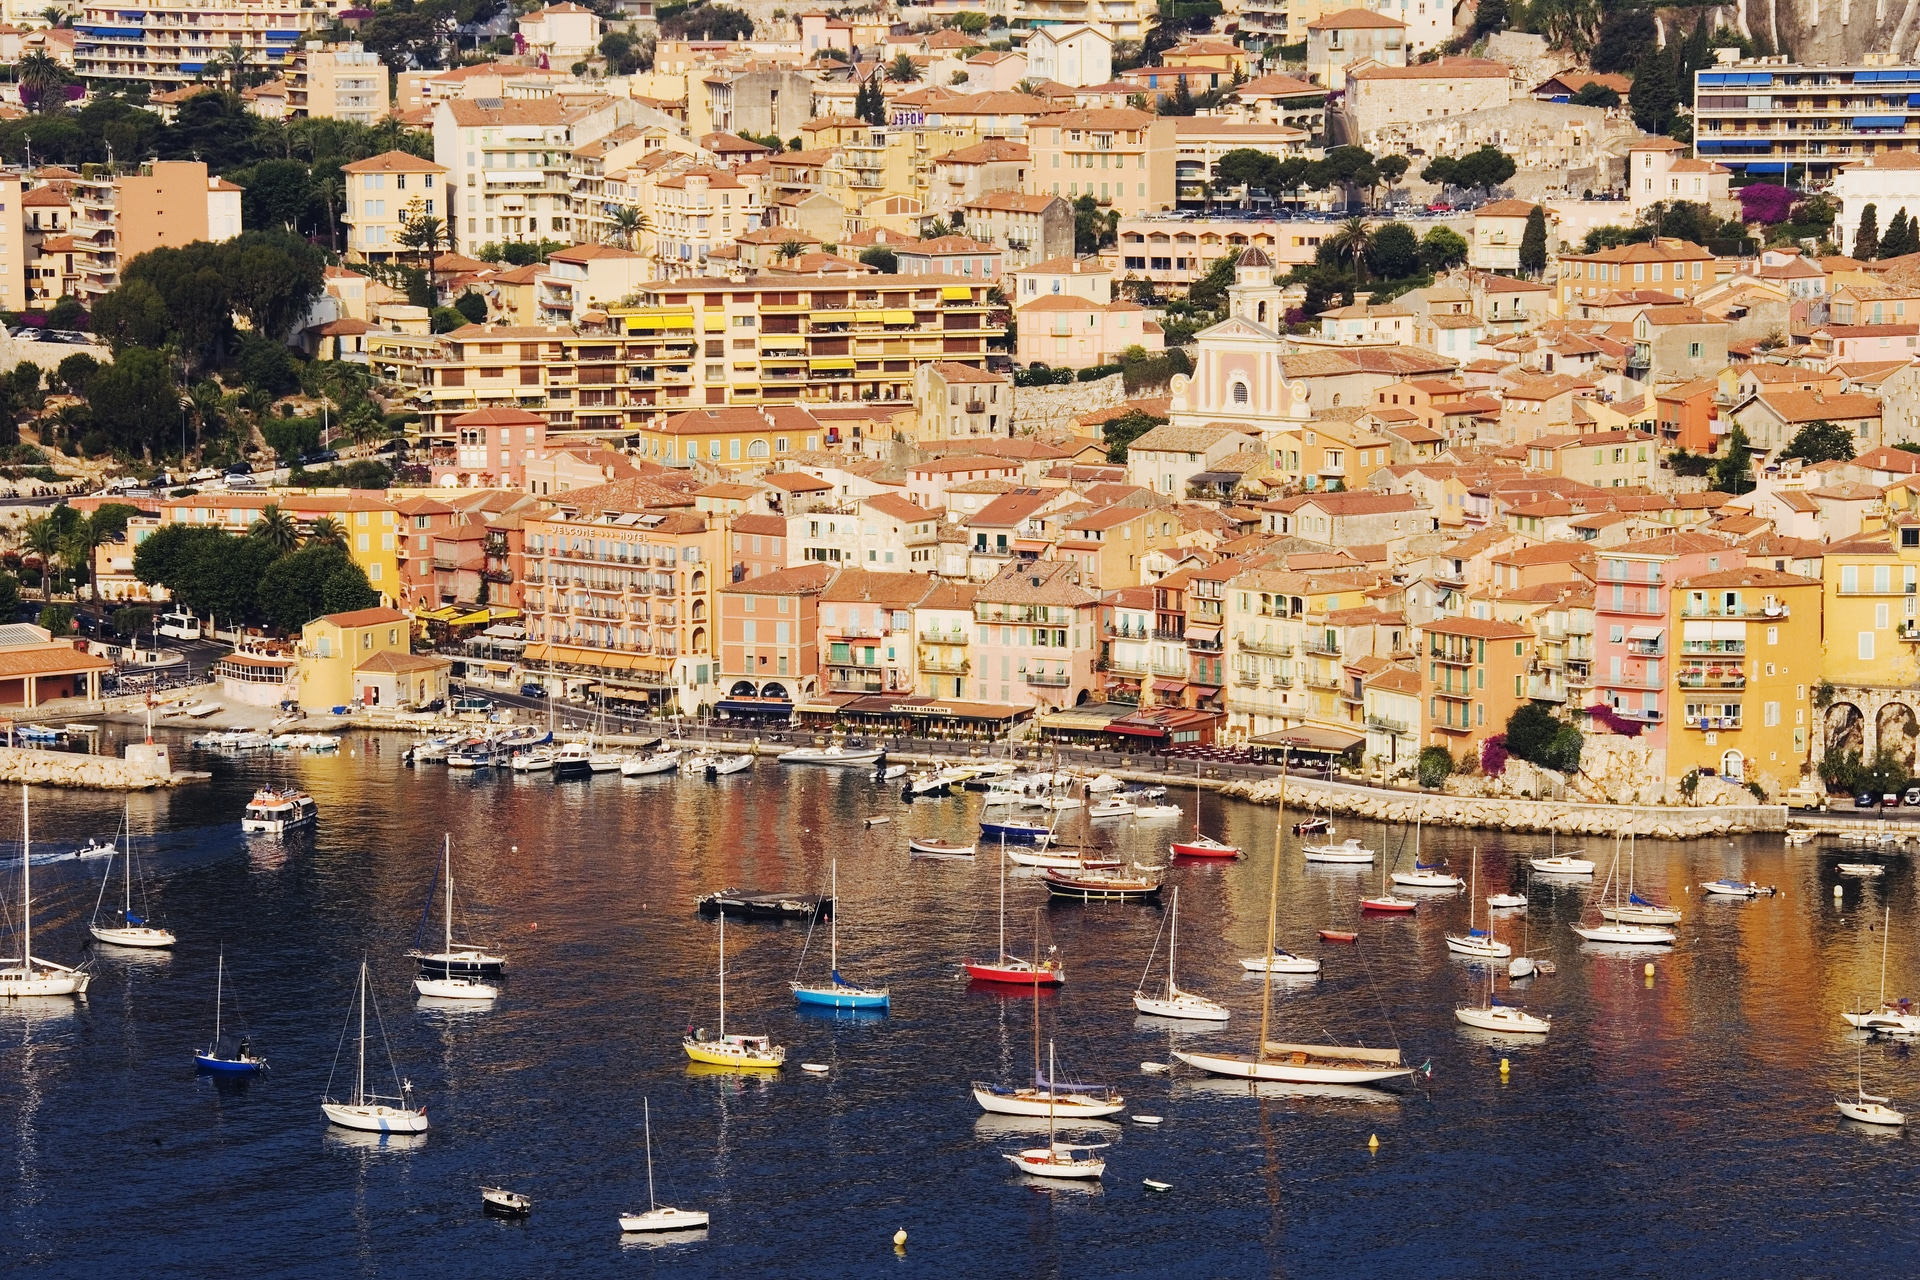 How to get from Villefranche port to Nice